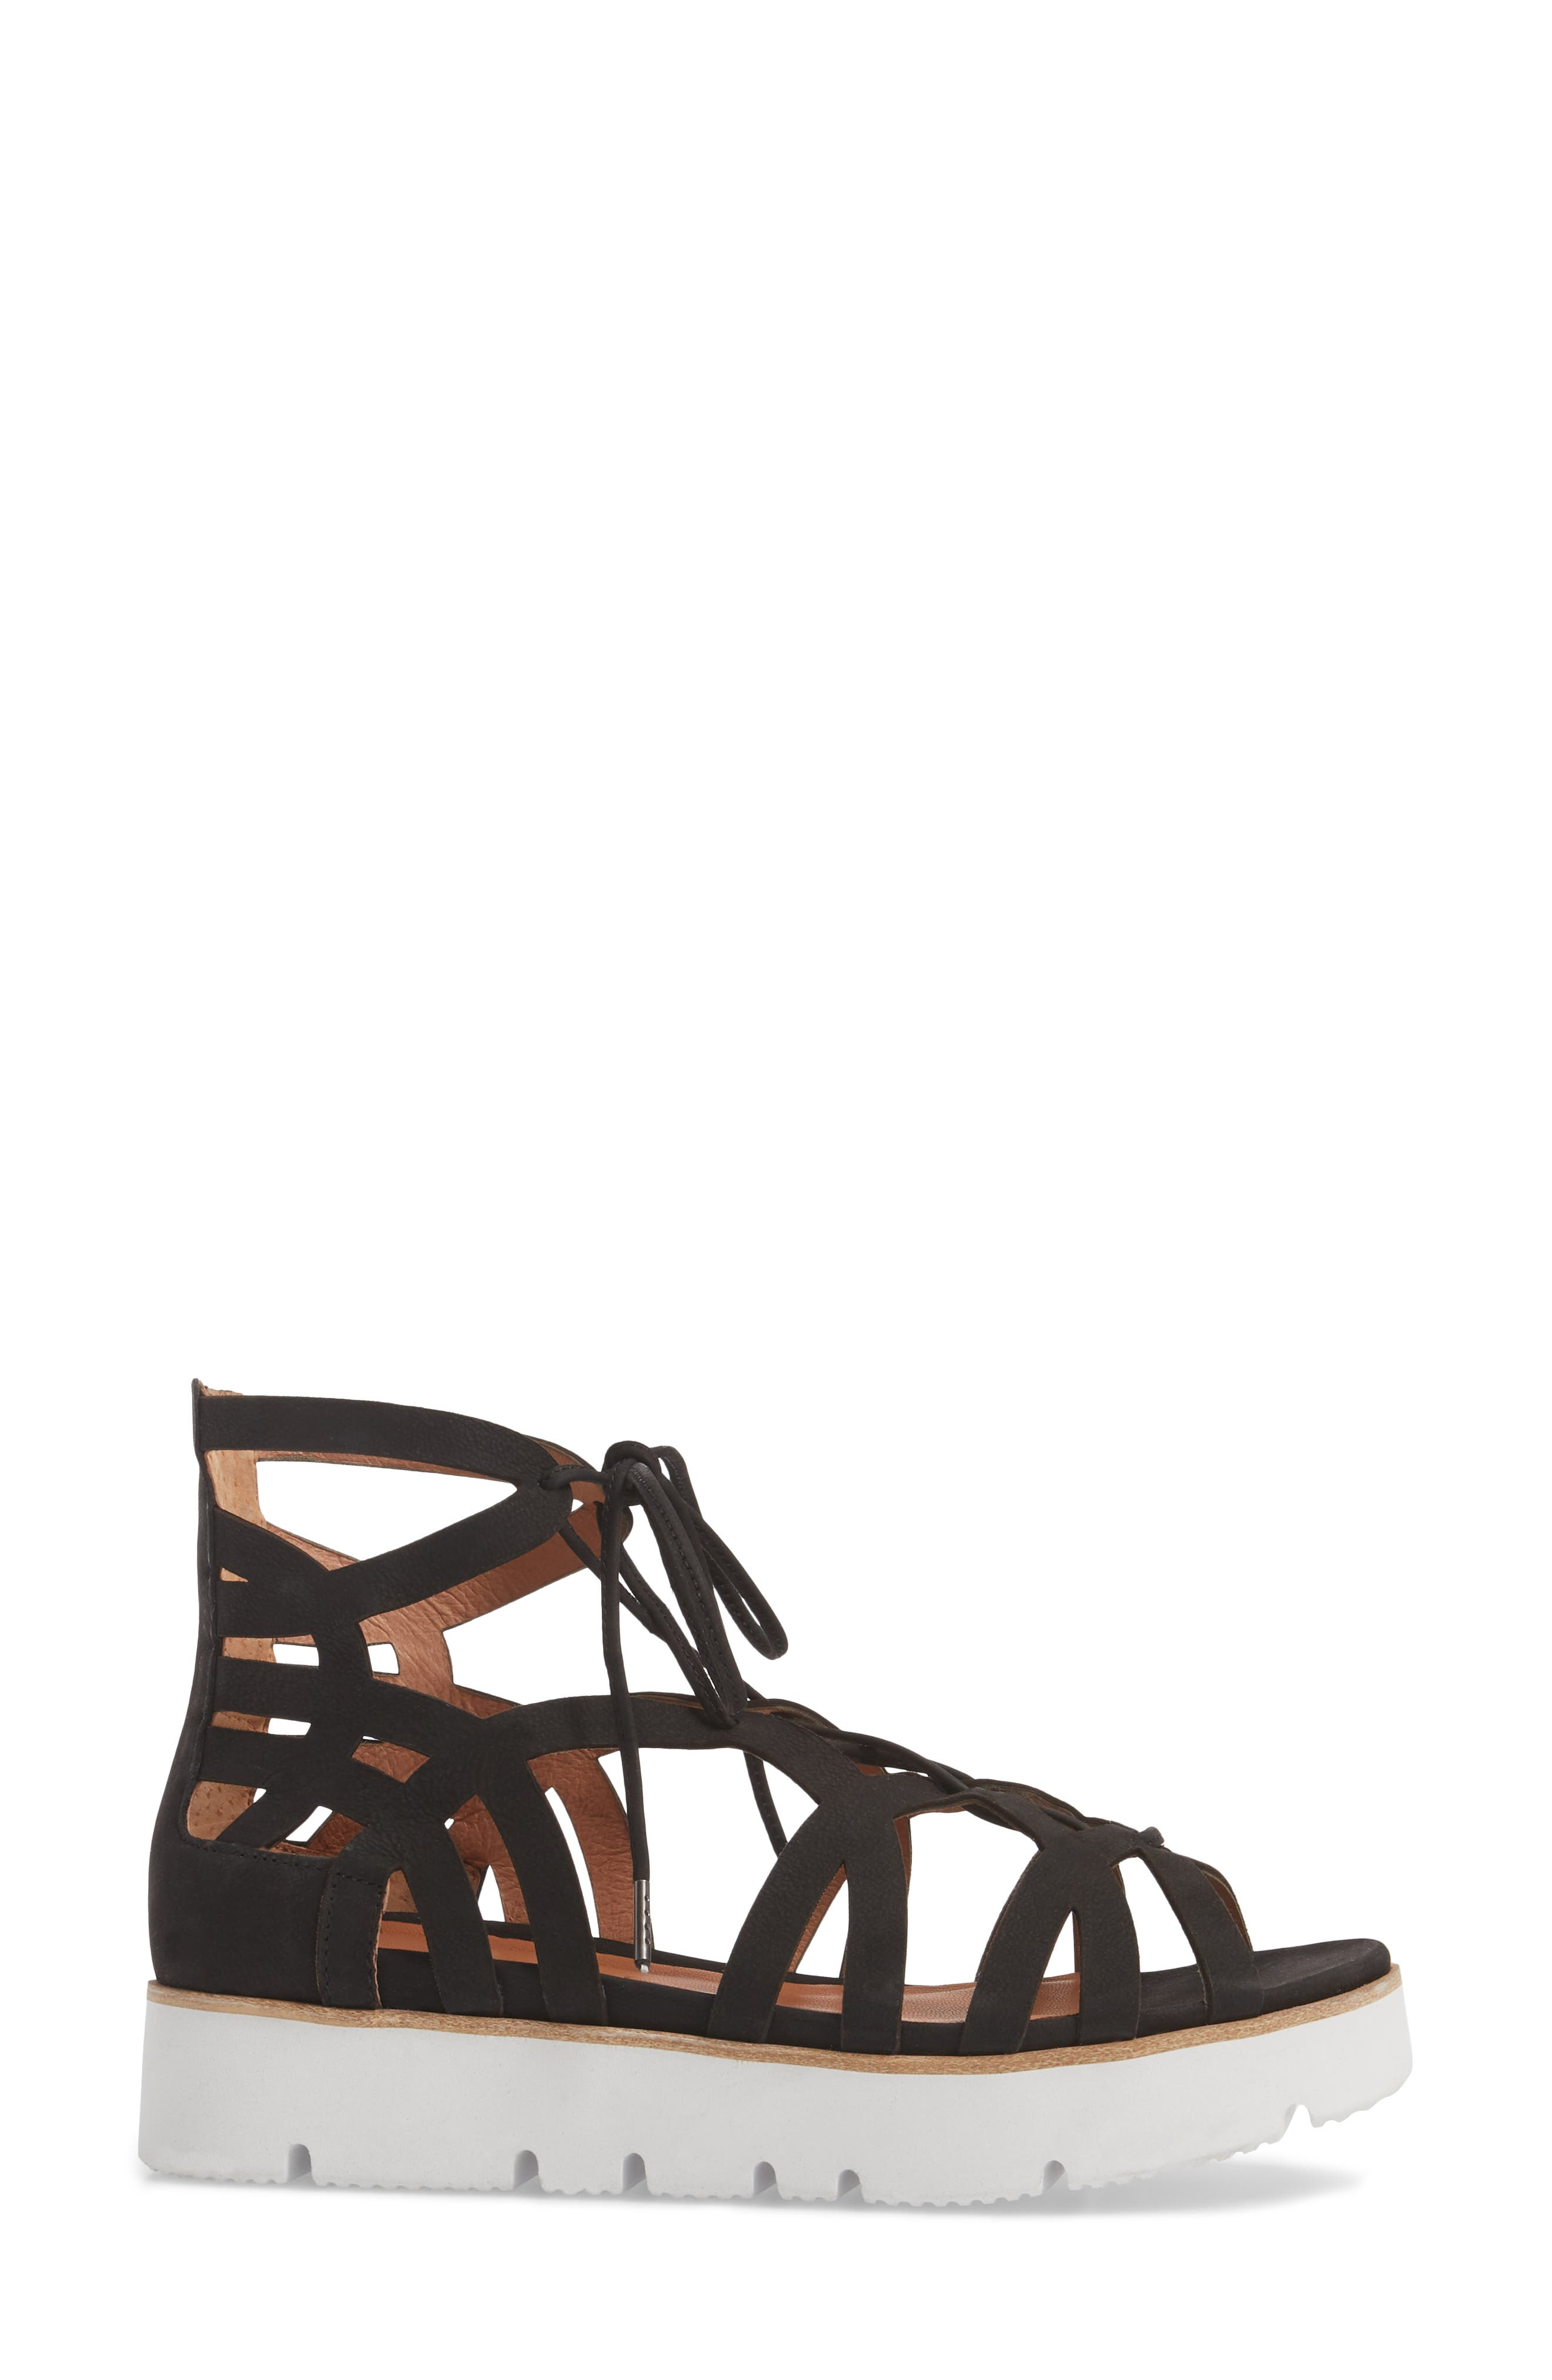 GENTLE SOULS BY KENNETH COLE, Larina Lace-Up Sandal, Alternate thumbnail 3, color, BLACK NUBUCK